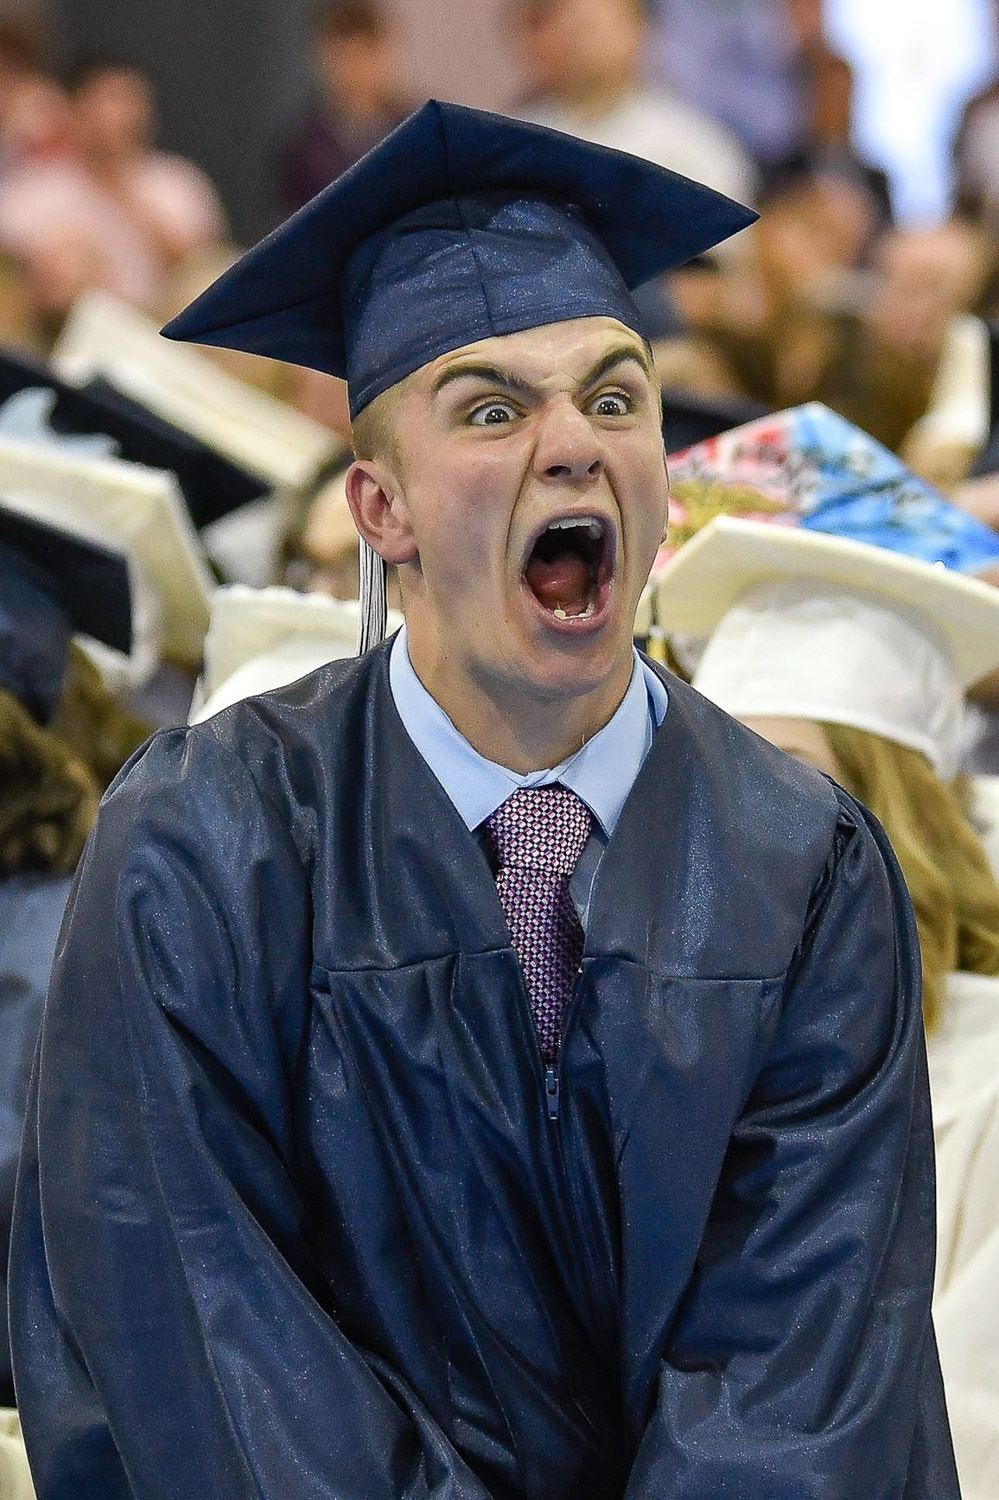 Second Place Personality:  Joseph Camara cheers on classmates during the Medford High School class of 2018 commencement exercises at the Gantcher Family Sports and Convocation Center at Tufts University on Wednesday, June 6, 2018. [Wicked Local Staff Photo / David Sokol]